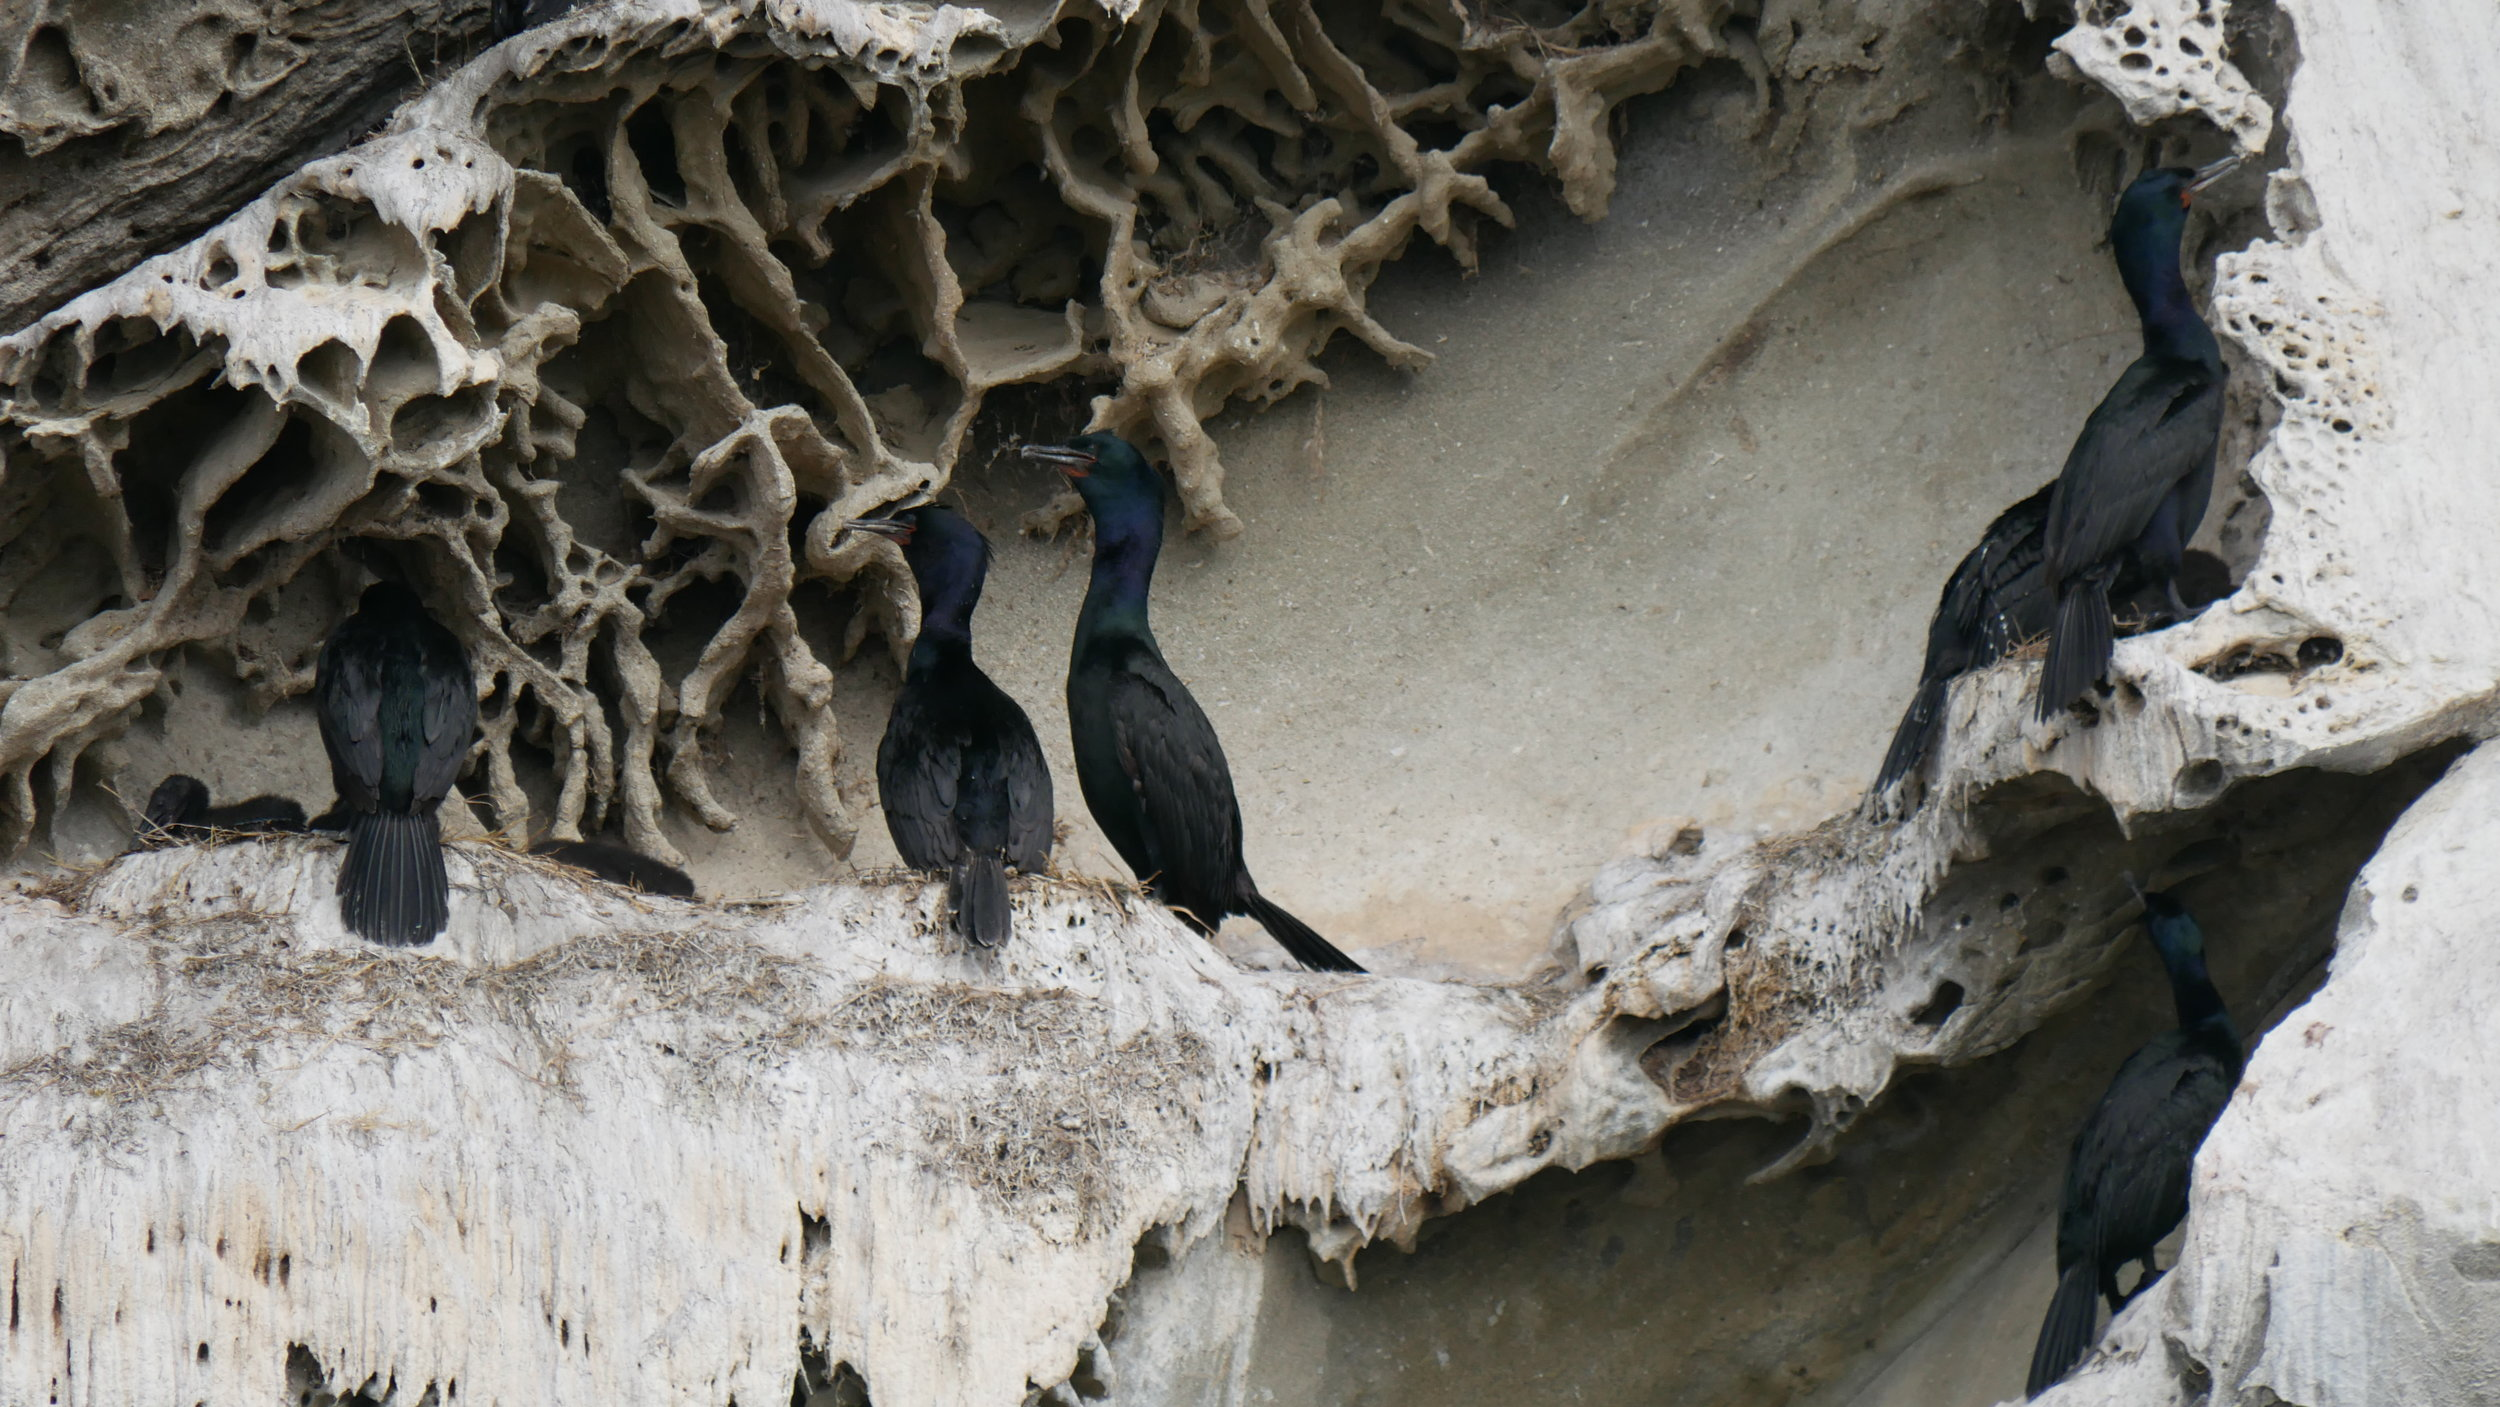 A bunch of Pelagic Cormorants at their nests (chicks can be seen on the far left side). Photo by Val Watson.